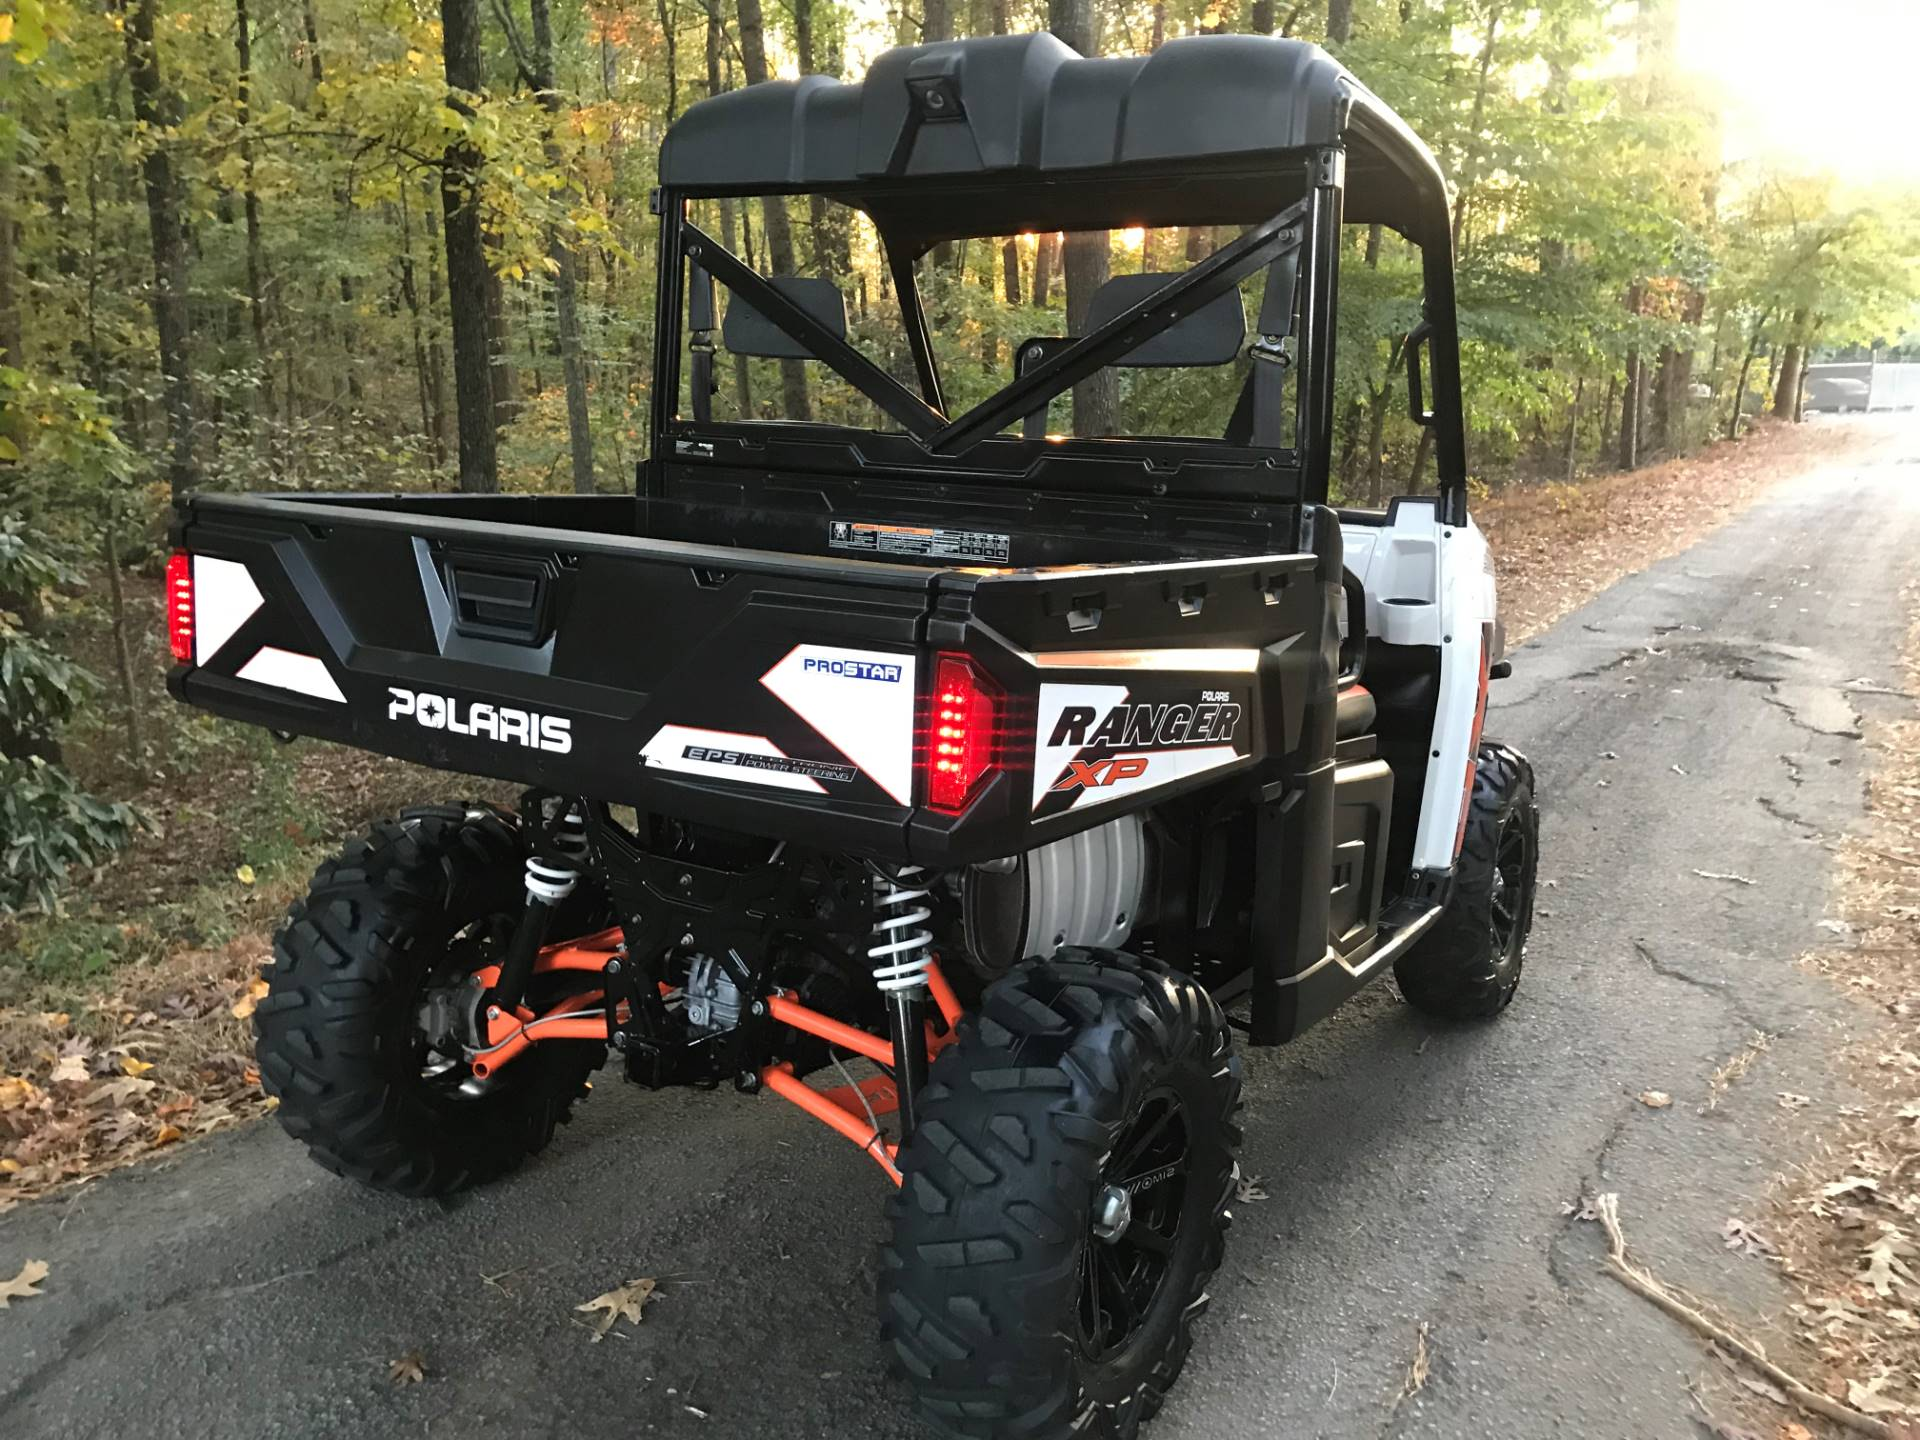 2015 POLARIS RANGER 900 XP EPS in Woodstock, Georgia - Photo 3